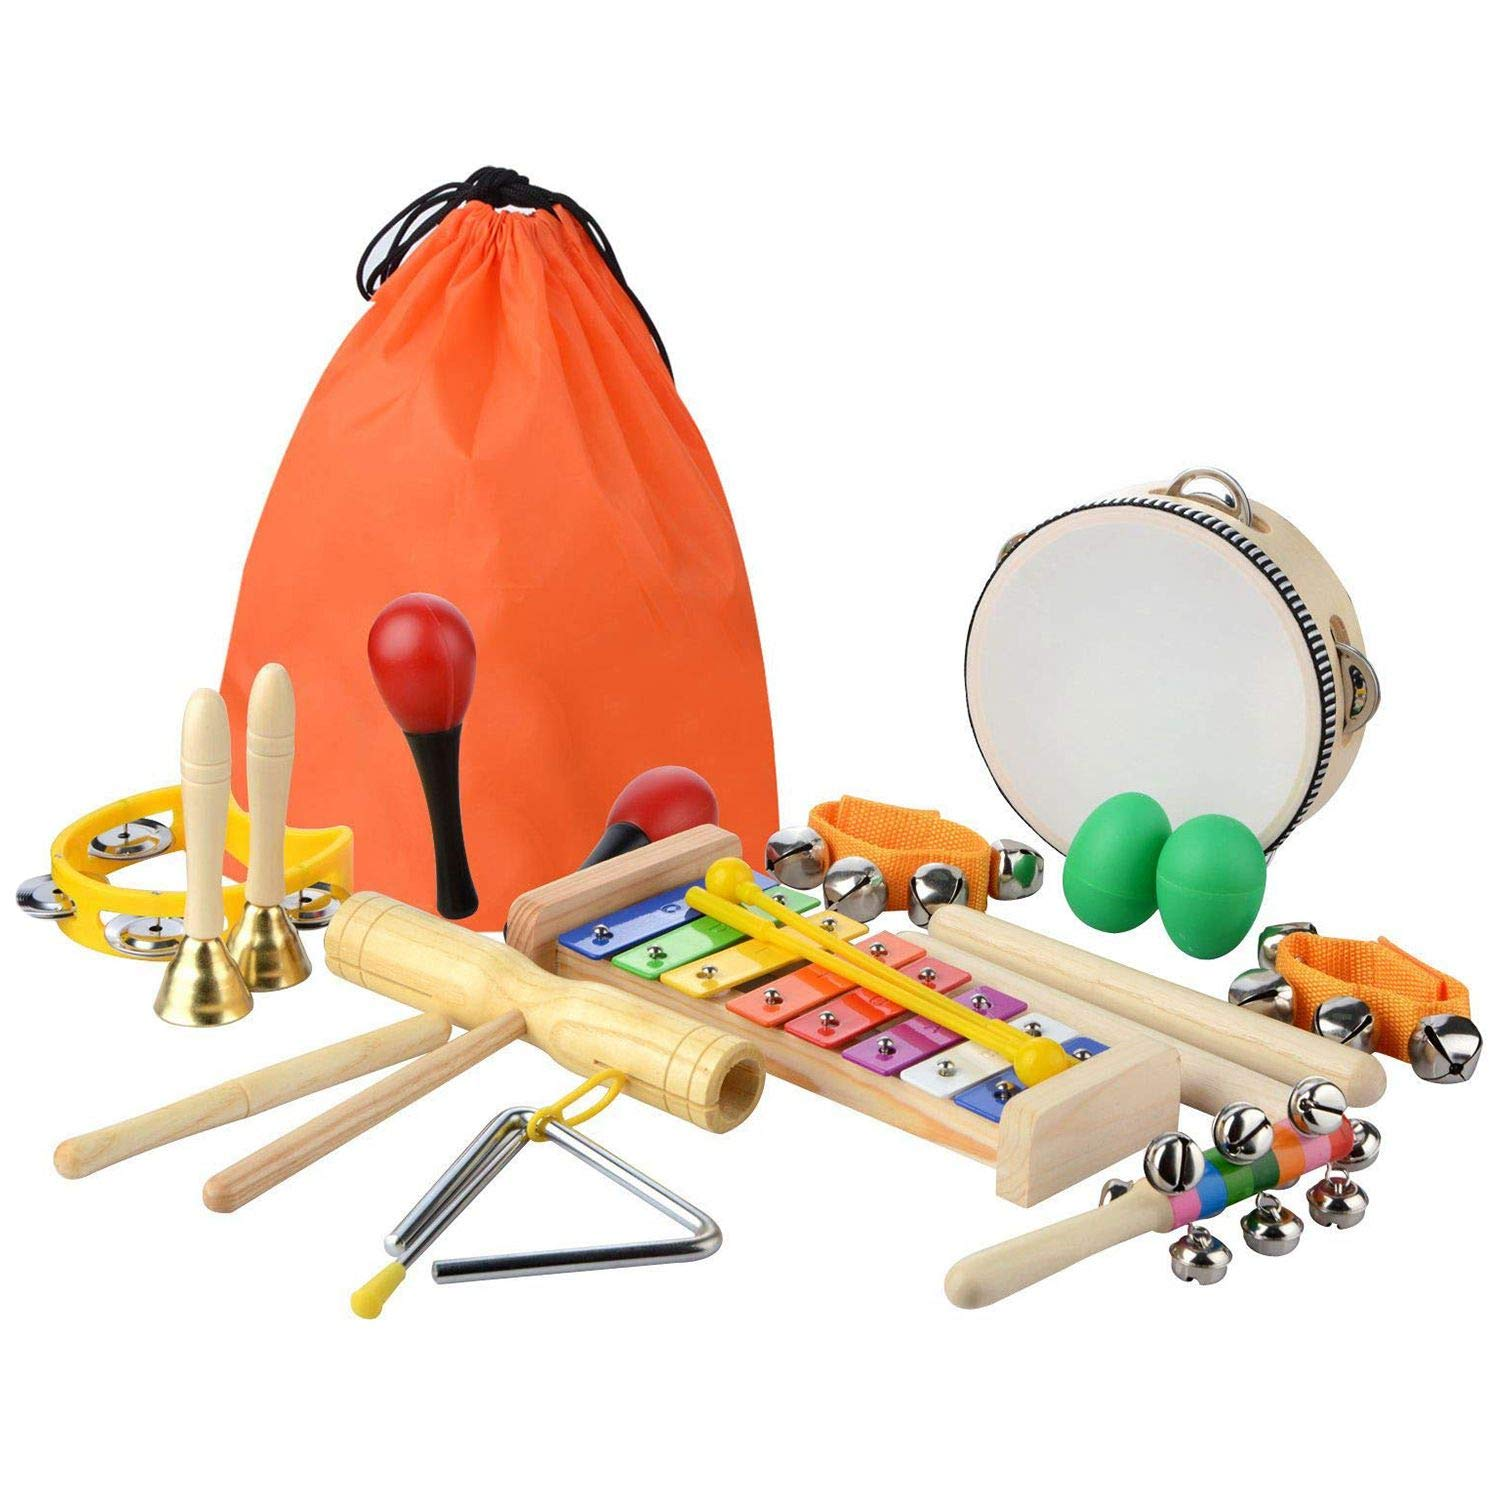 GonPi |Toy Musical Instruments | 1 Piece 20 Pcs Toddler & Baby Musical Instruments Set - Percussion Toy Fun Toddlers Toys Wooden Xylophone Glockenspiel Toy Rhythm Band by GonPi